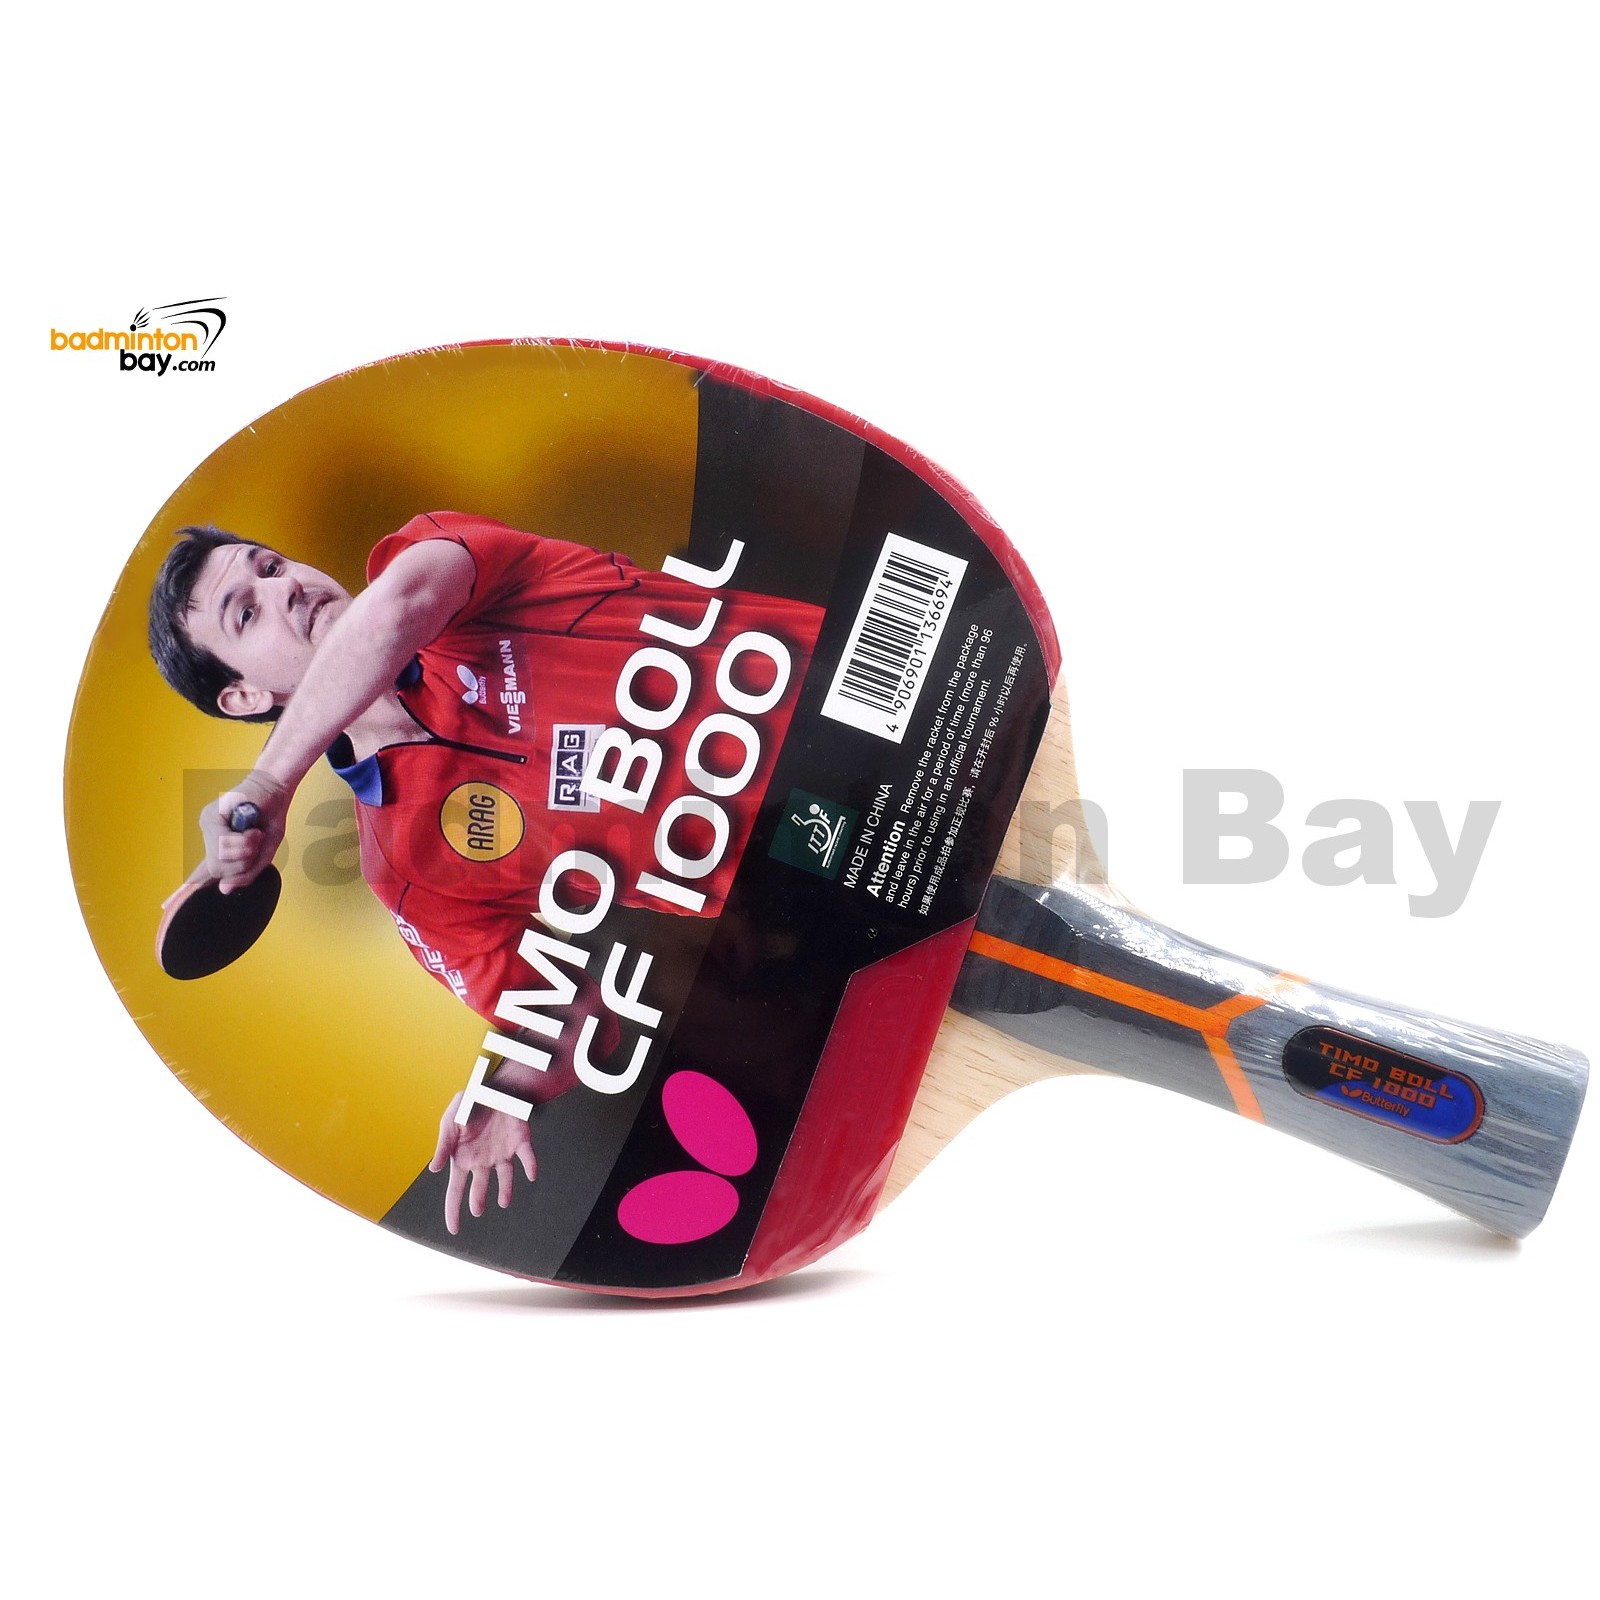 Butterfly Timo Boll Cf 1000 Fl Shakehand Table Tennis